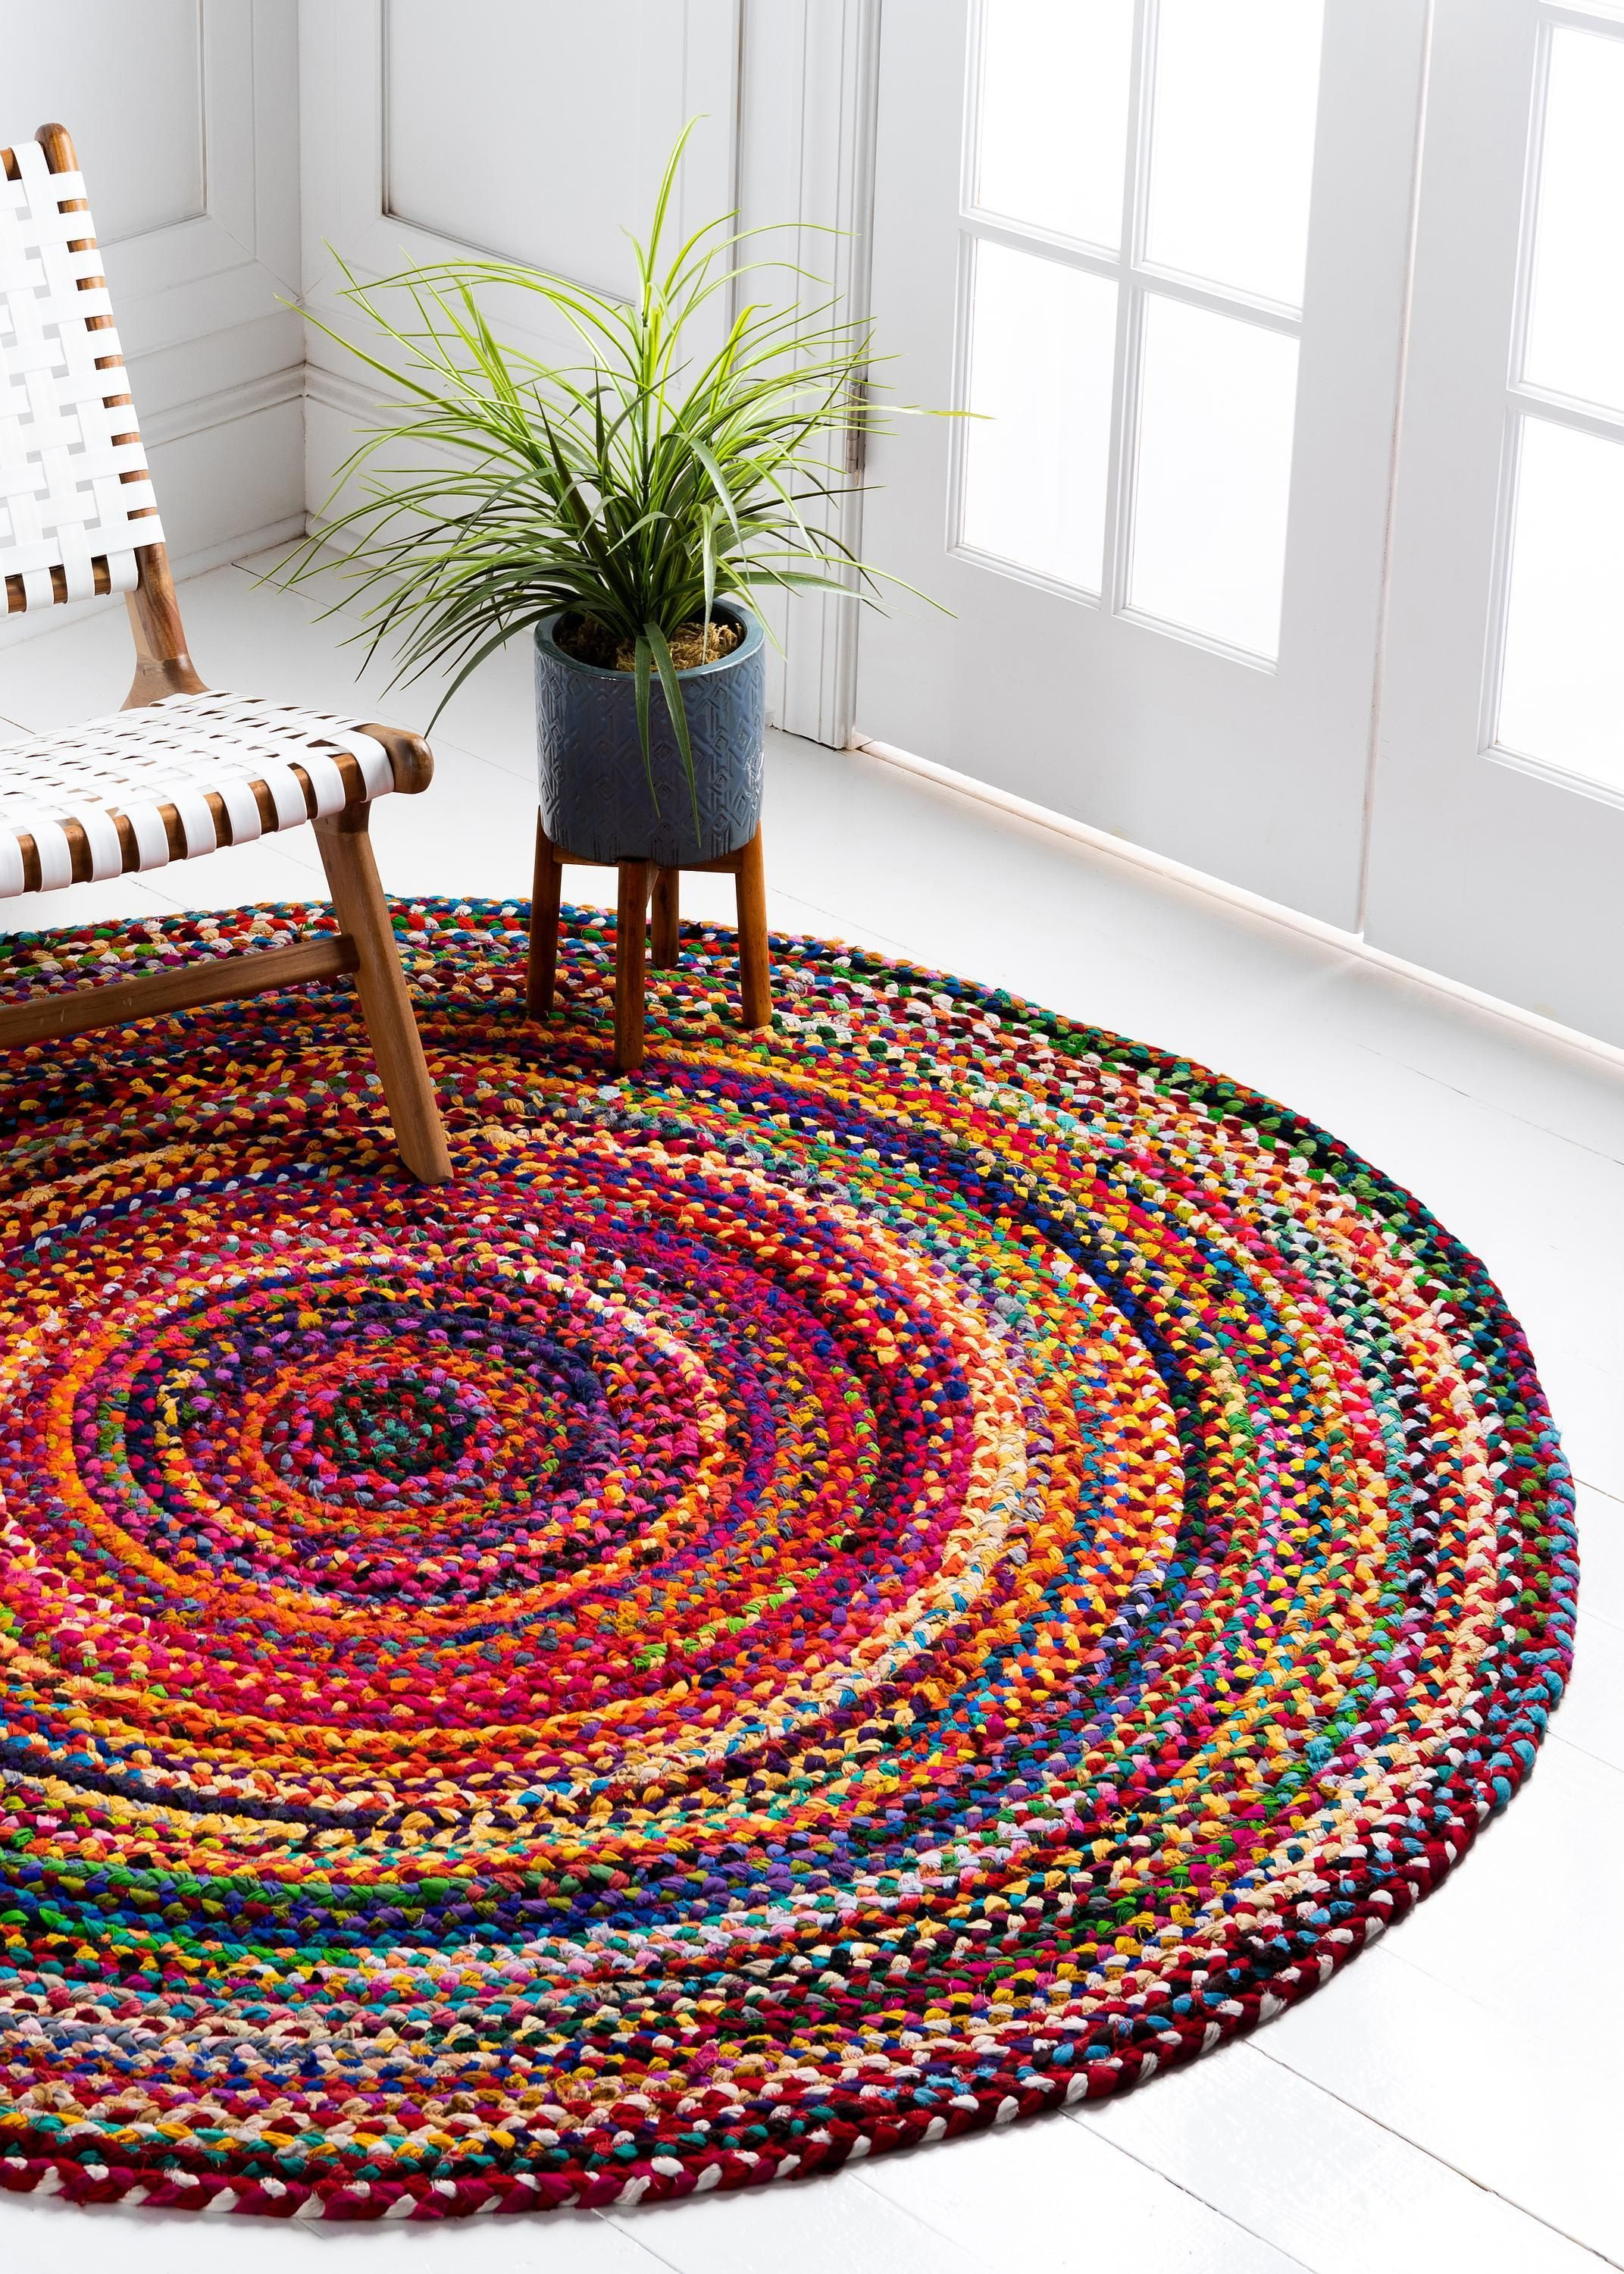 Multi 6 X 6 Braided Chindi Round Rug Area Rugs Esalerugs Braided Rugs Area Rugs For Sale Round Rugs